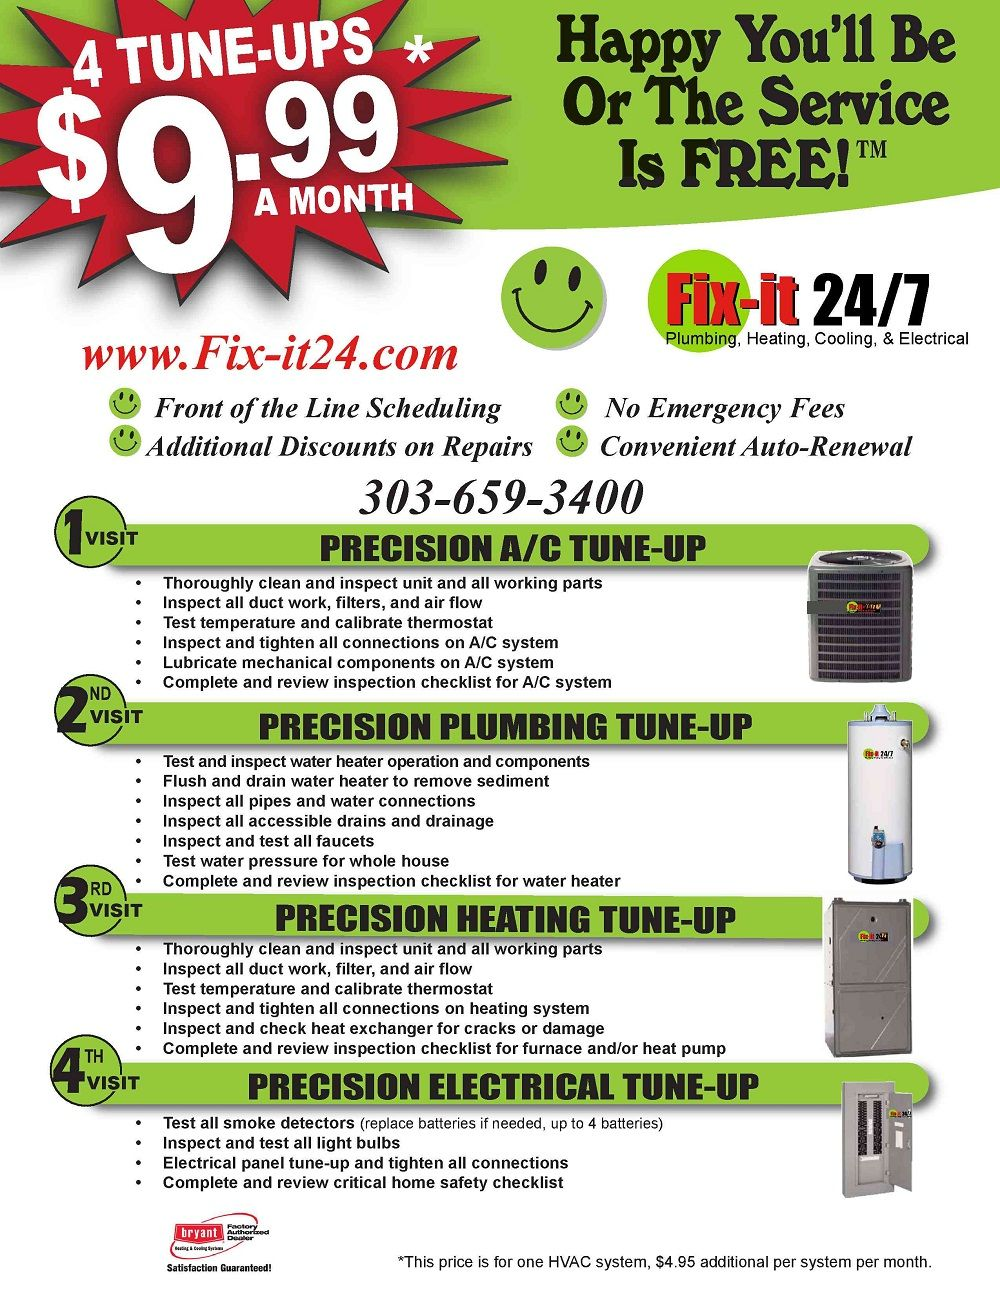 Join our Happy Fix-It Club and get these amazing services for only $9.99 a month! Call us now at 303-659-3400 for more details.  Visit our website or call us at 303-659-3400 for more info!